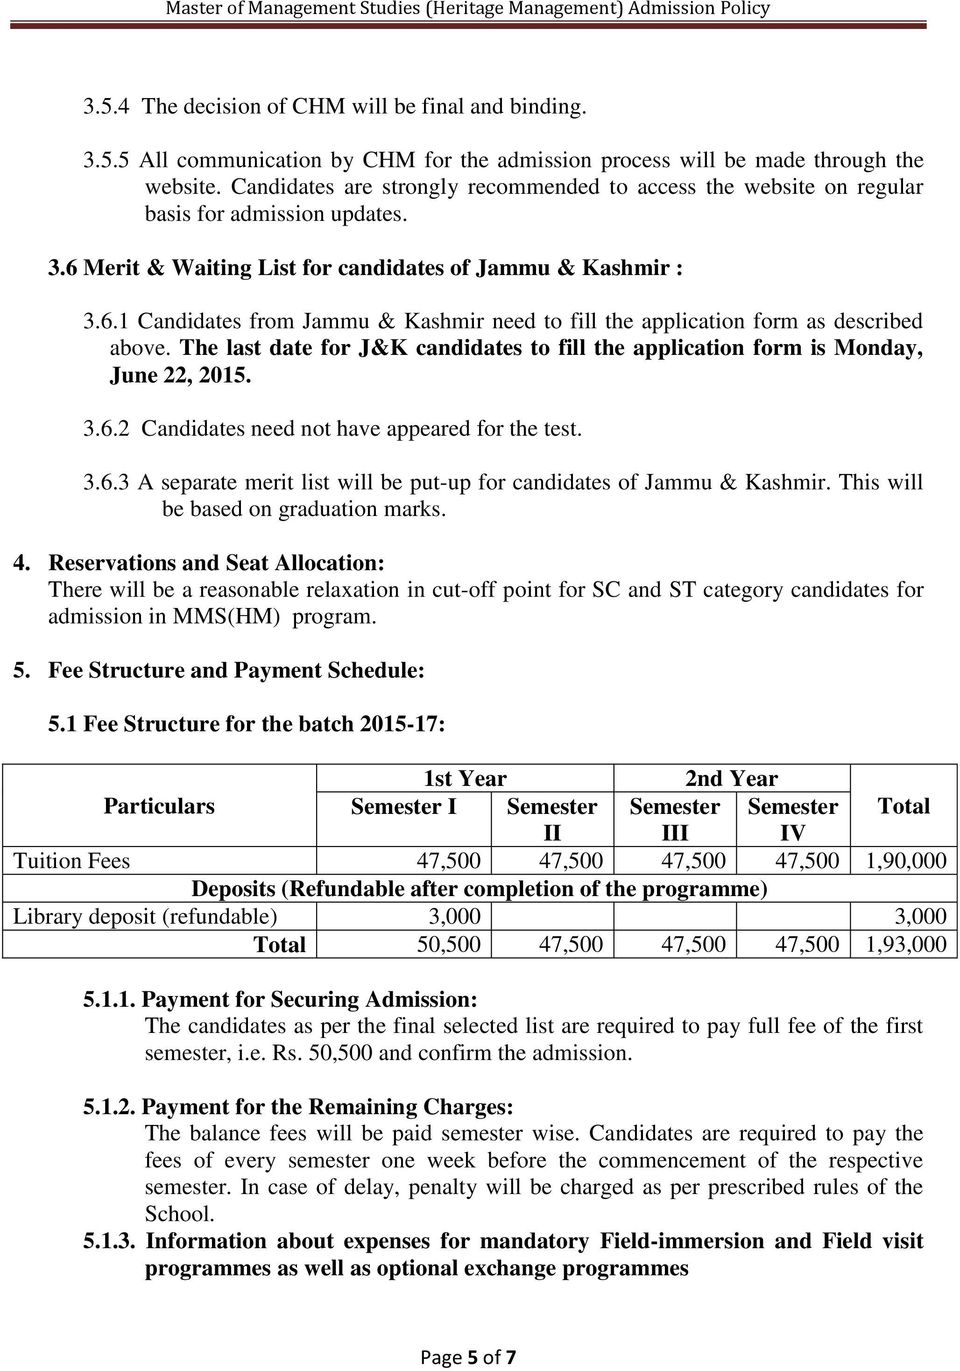 The last date for J&K candidates to fill the application form is Monday, June 22, 2015. 3.6.2 Candidates need not have appeared for the test. 3.6.3 A separate merit list will be put-up for candidates of Jammu & Kashmir.